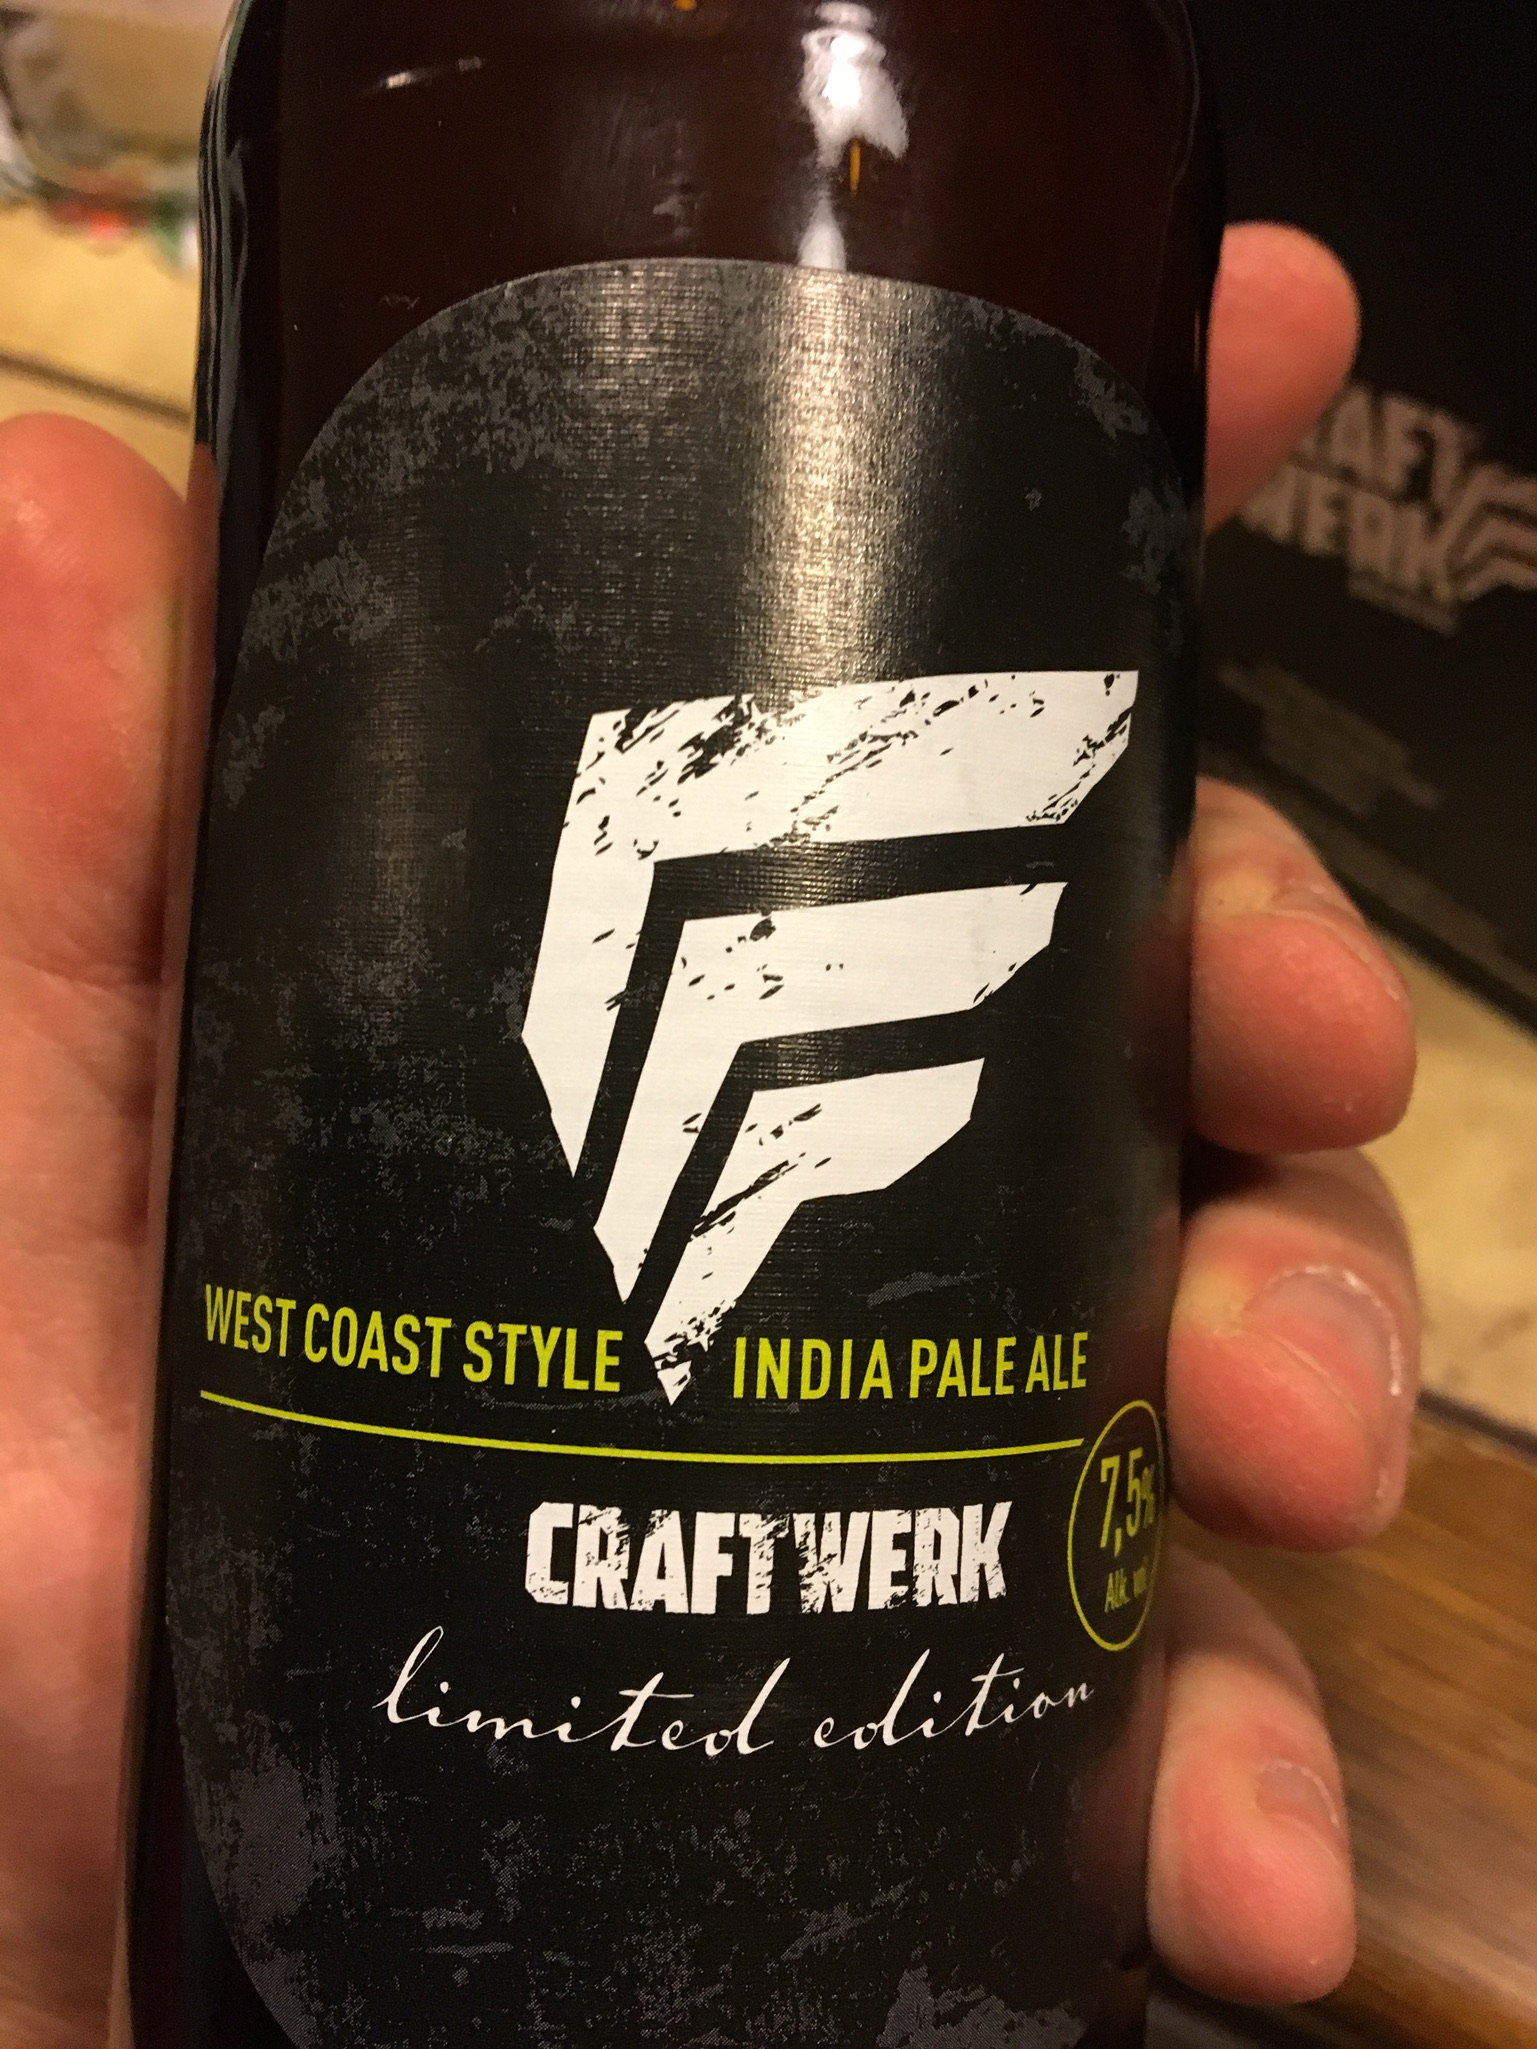 Craftwerk – West Coast Style IPA